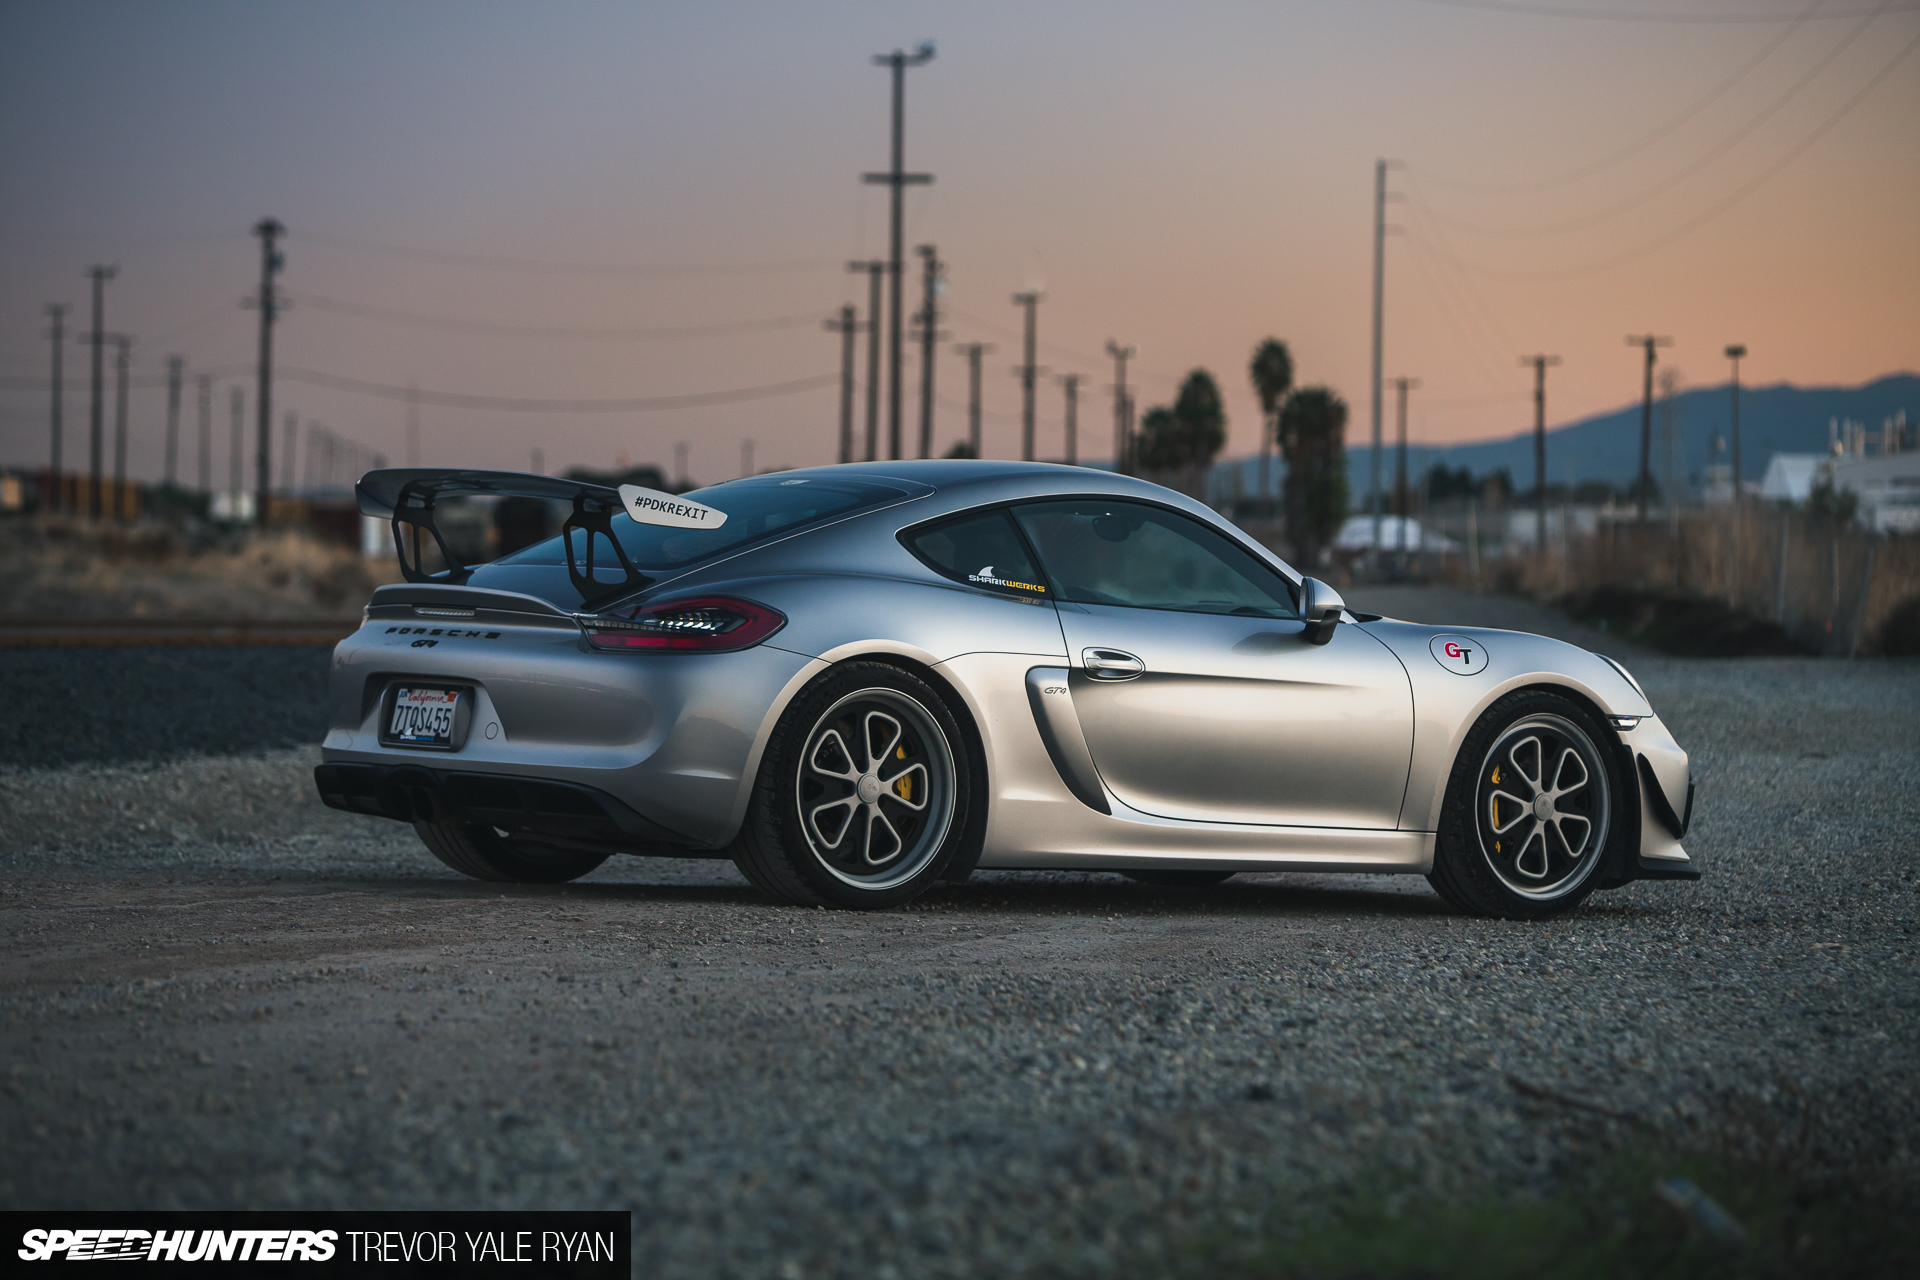 Sharks & Recreation: The Unpretentious Porsche